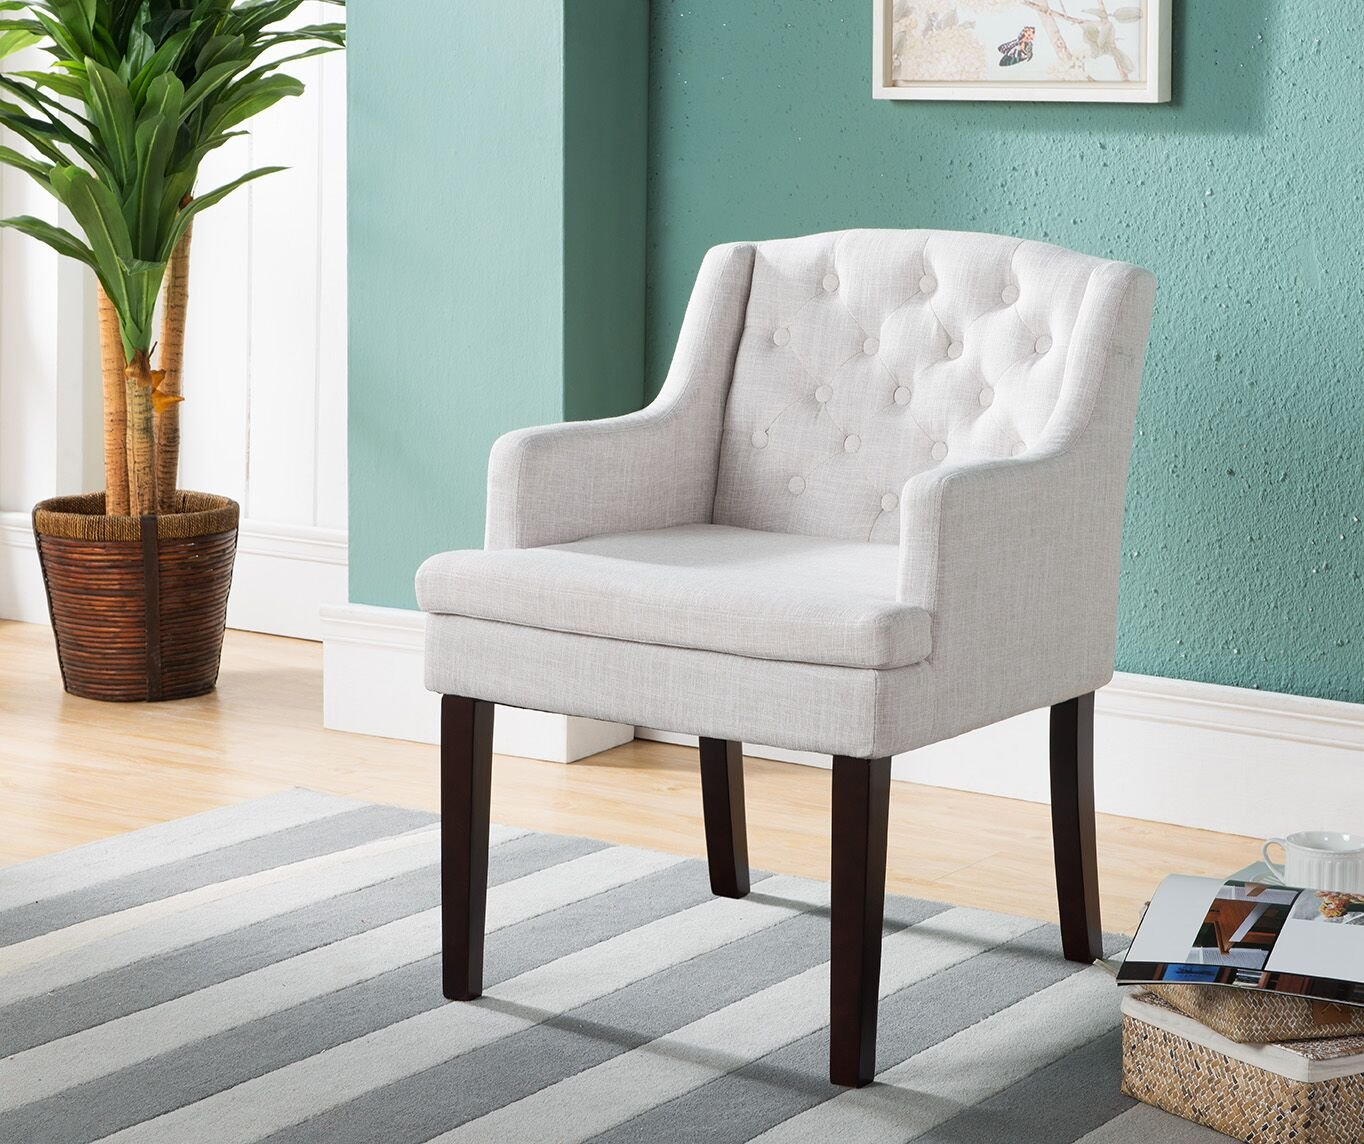 Kings Brand Furniture Tufted Back Accent Chair with Arms, Cream White/Cherry